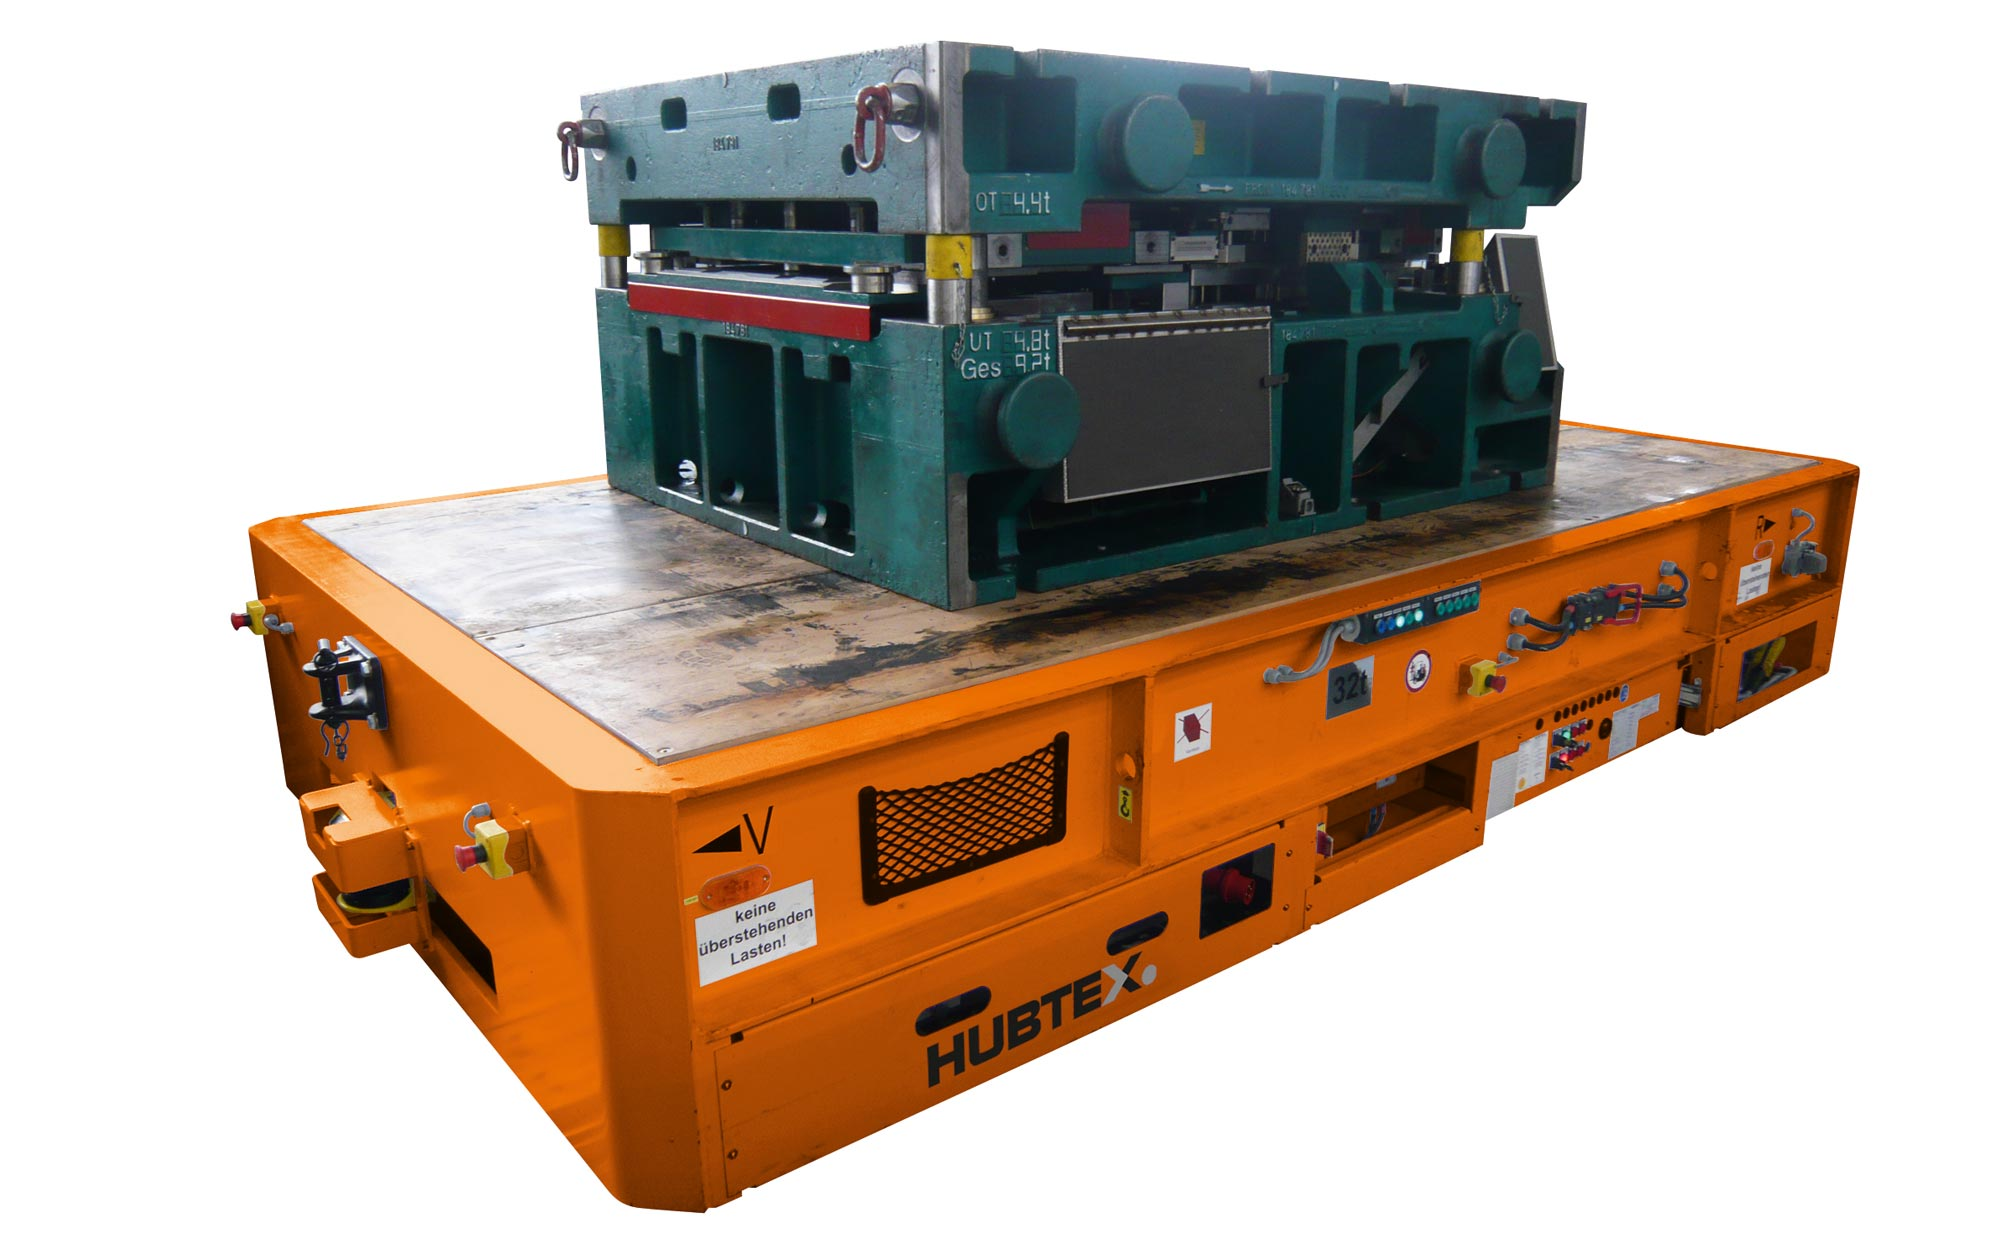 Hubtex Electric Multidirectional Sideloader Transporting Pressing Tools